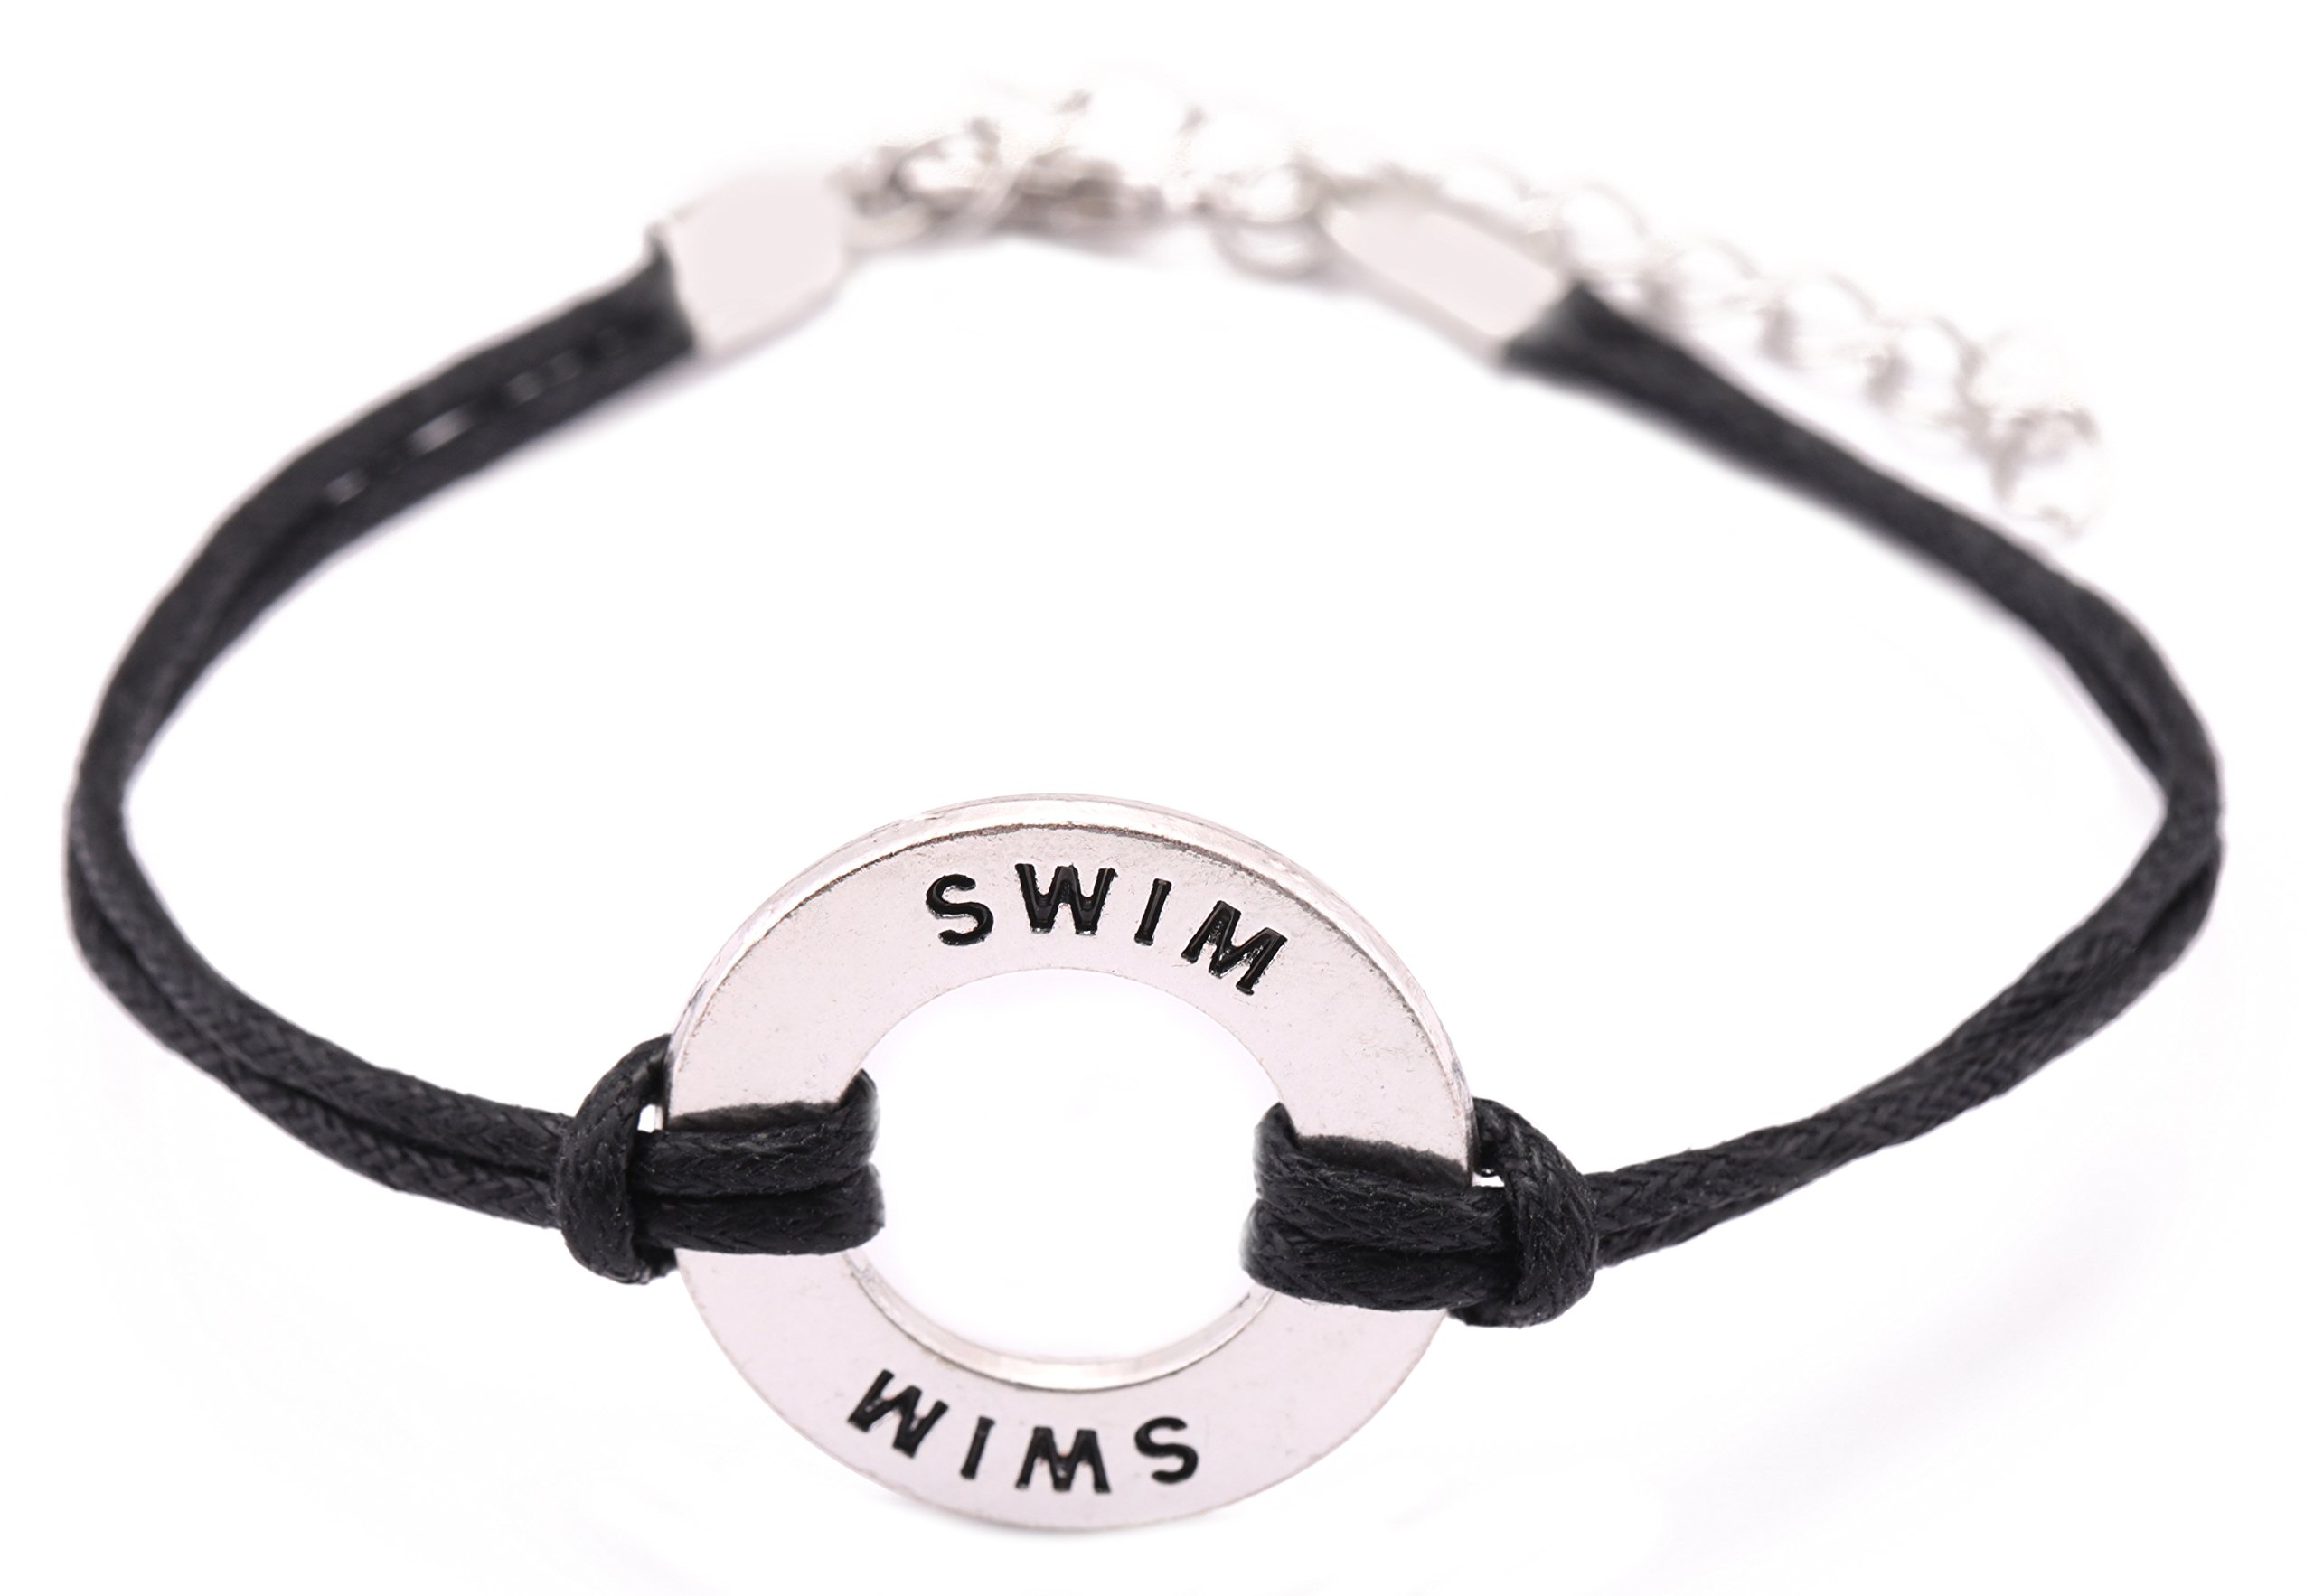 Teamer Adjustable Wax Cord Bracelet Message Swim Charm Sports Jewelry for Woman/Man Best Gifts